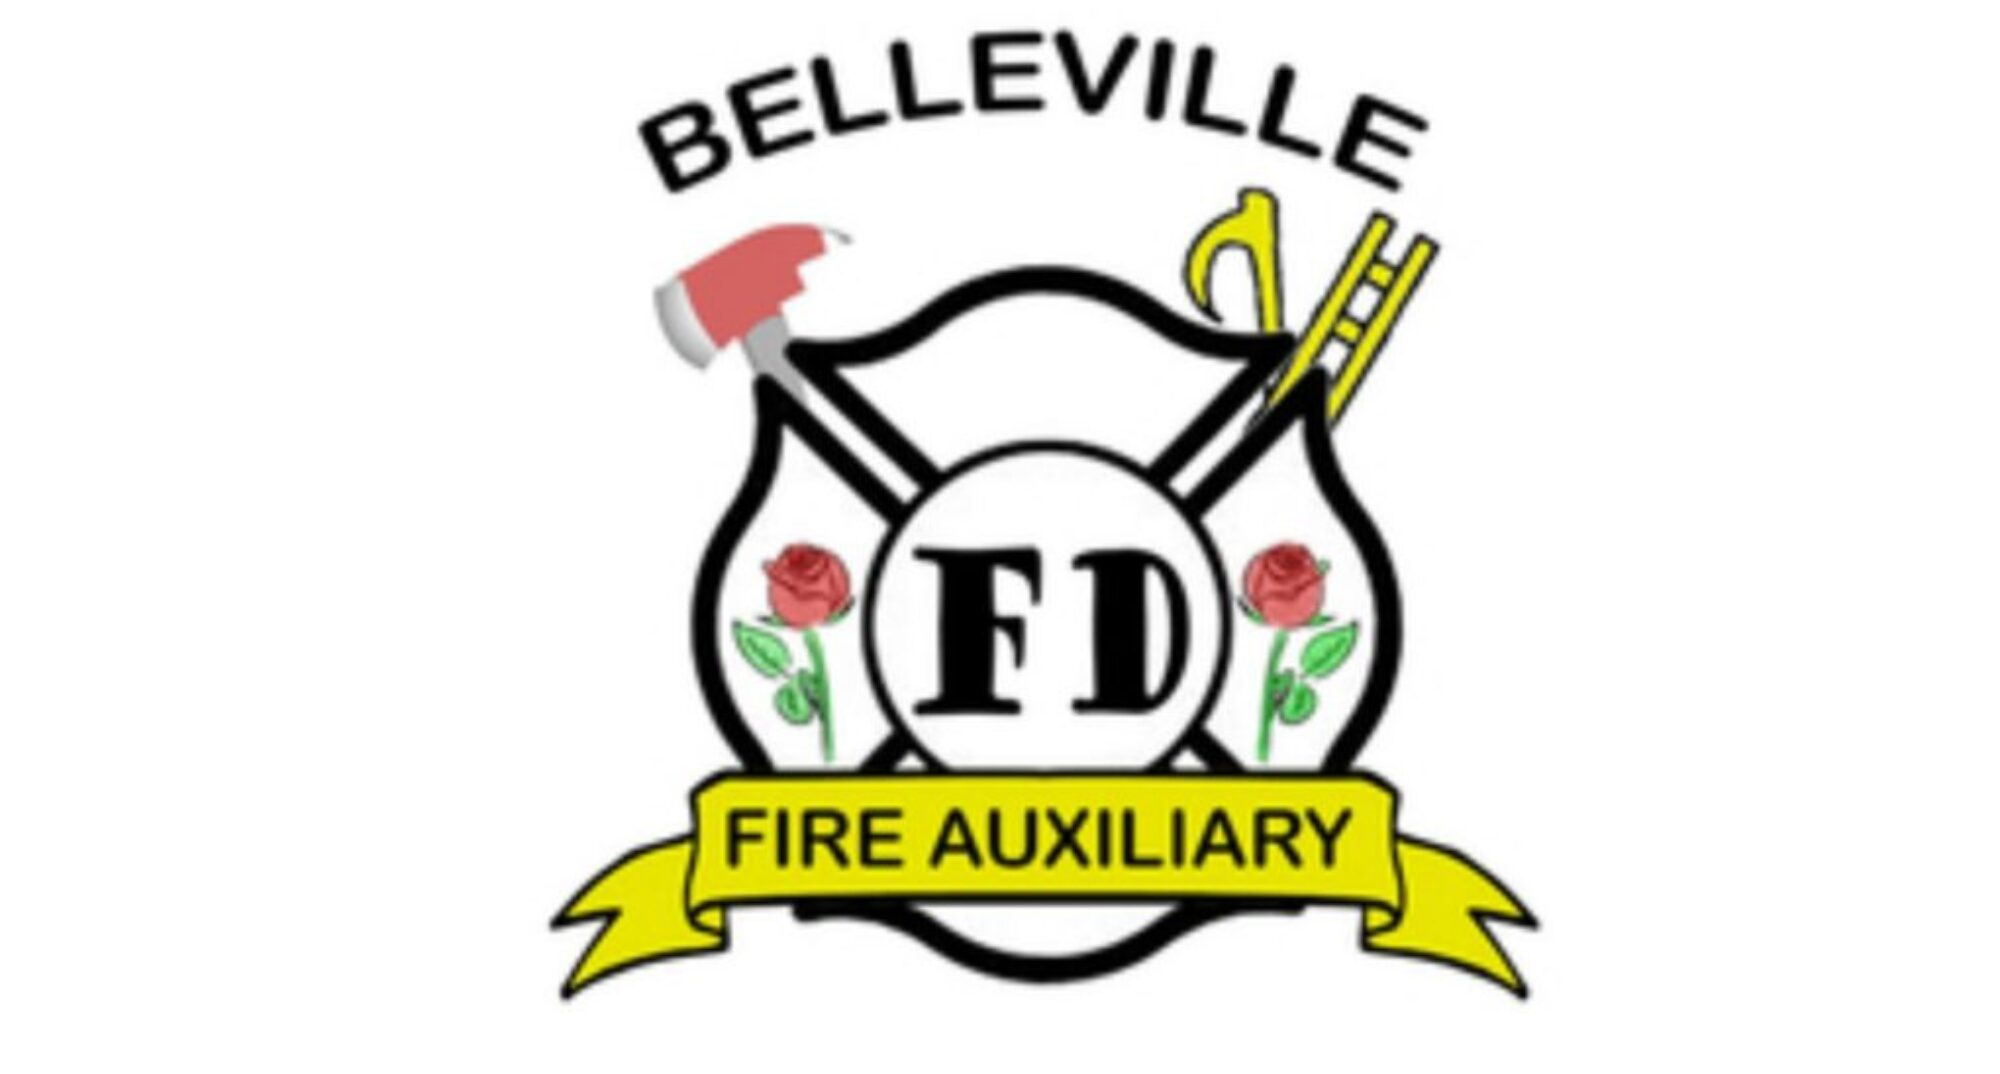 Belleville Fire Auxiliary